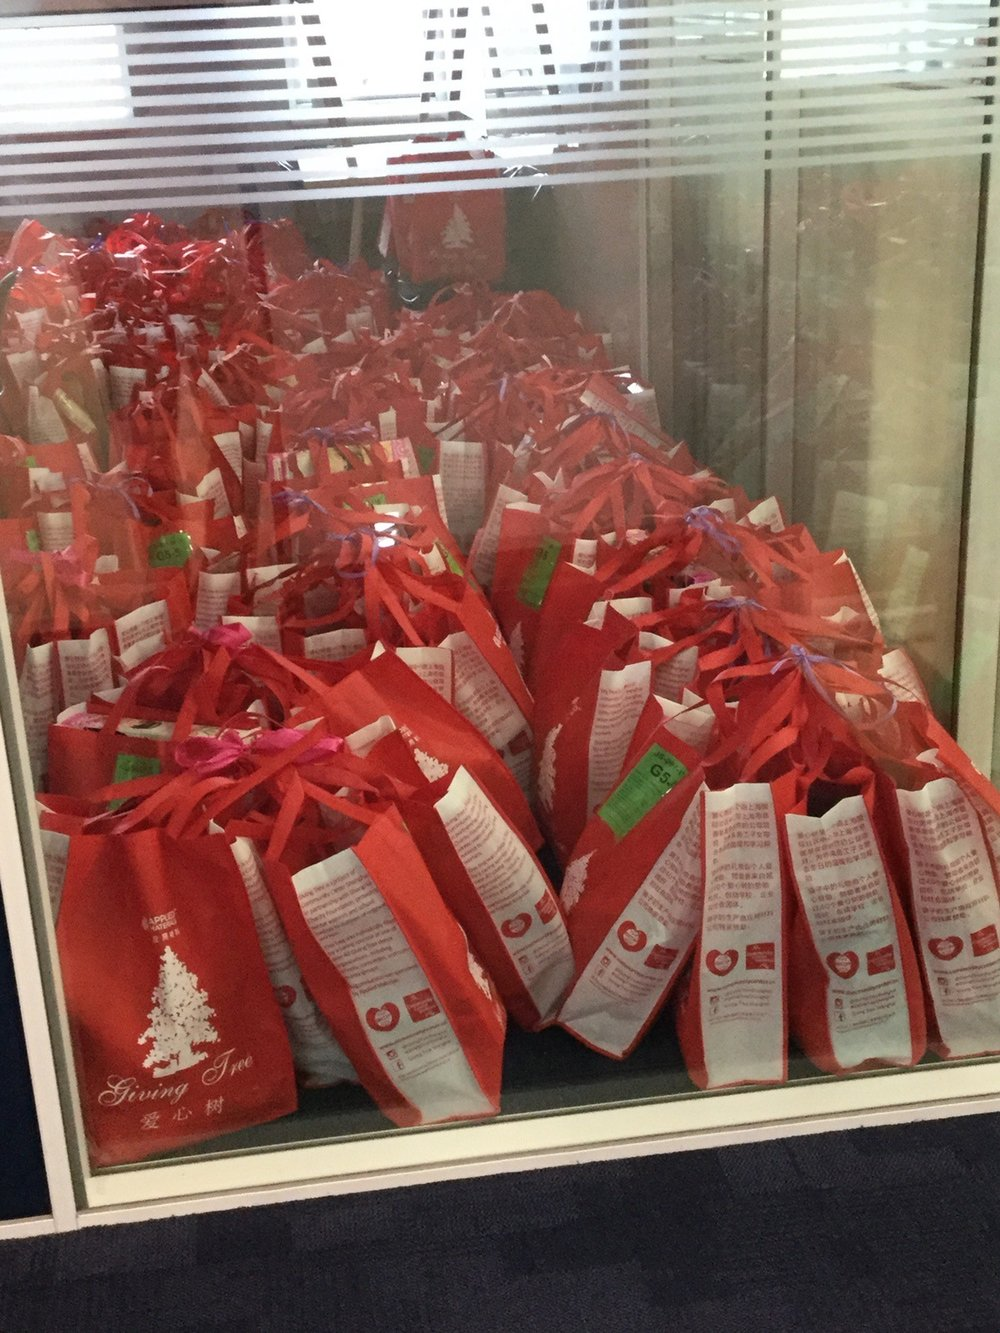 Concordia's Giving Tree bags are packed and ready for this year's distribution.  (image: John H., Concordia Applied Journalism)